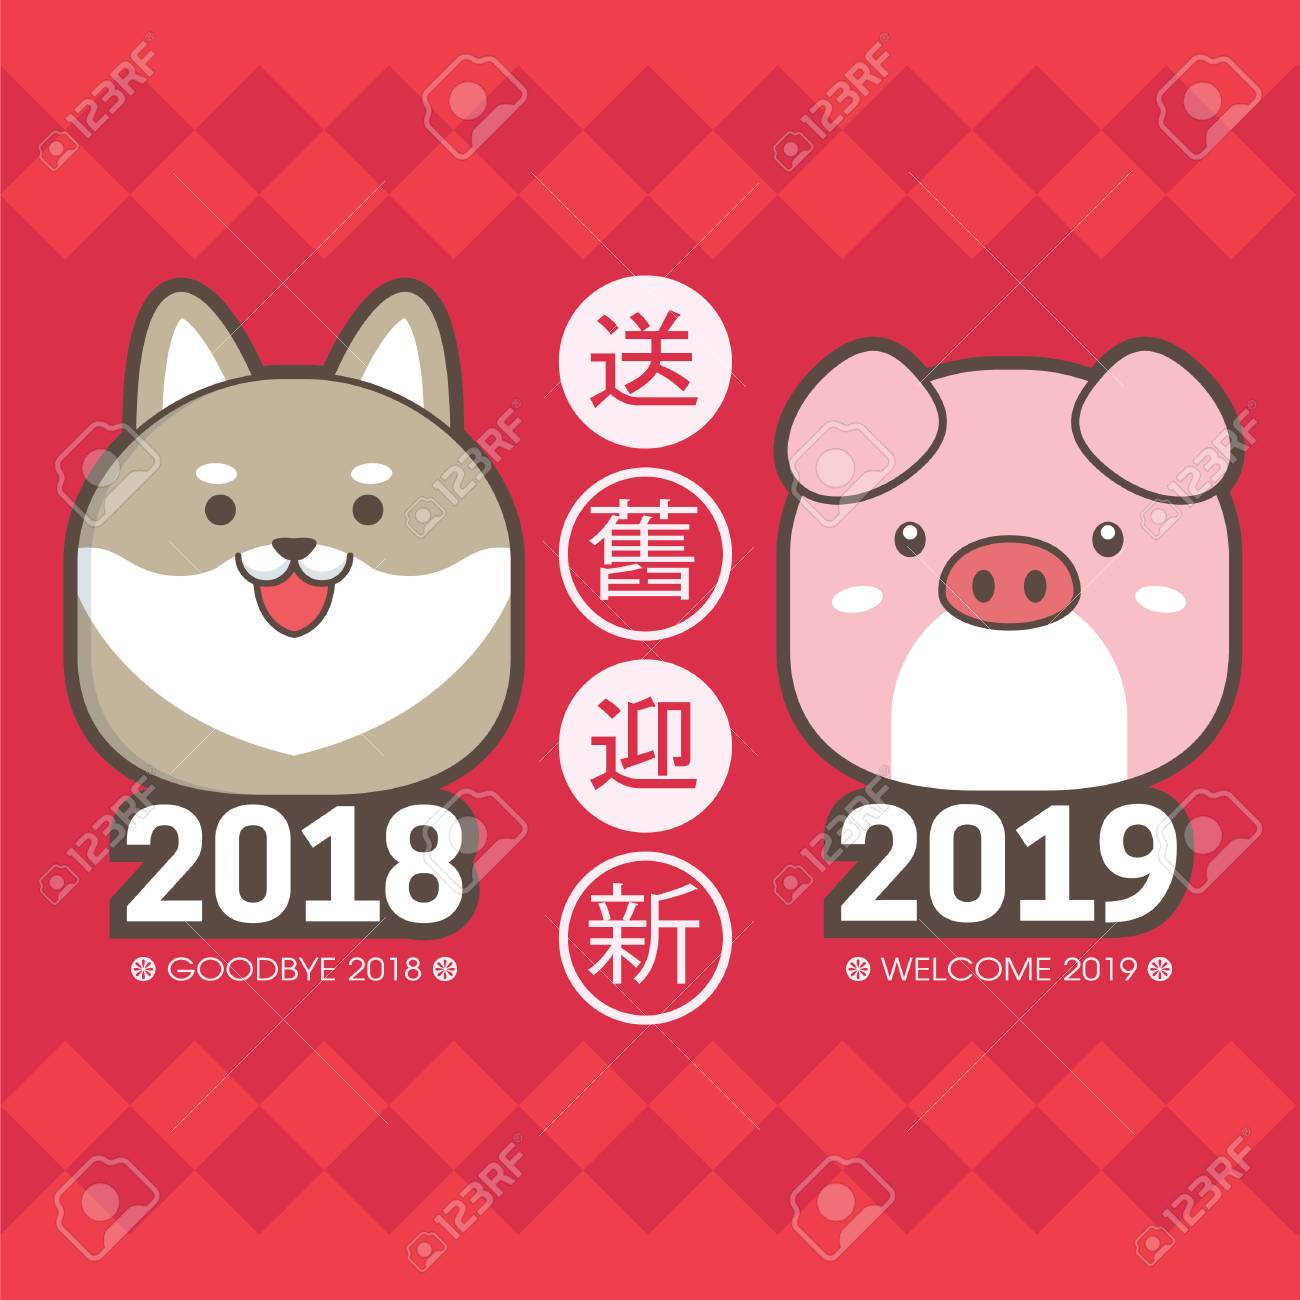 2019 chinese new year greeting card template with cute puppy piggy translation